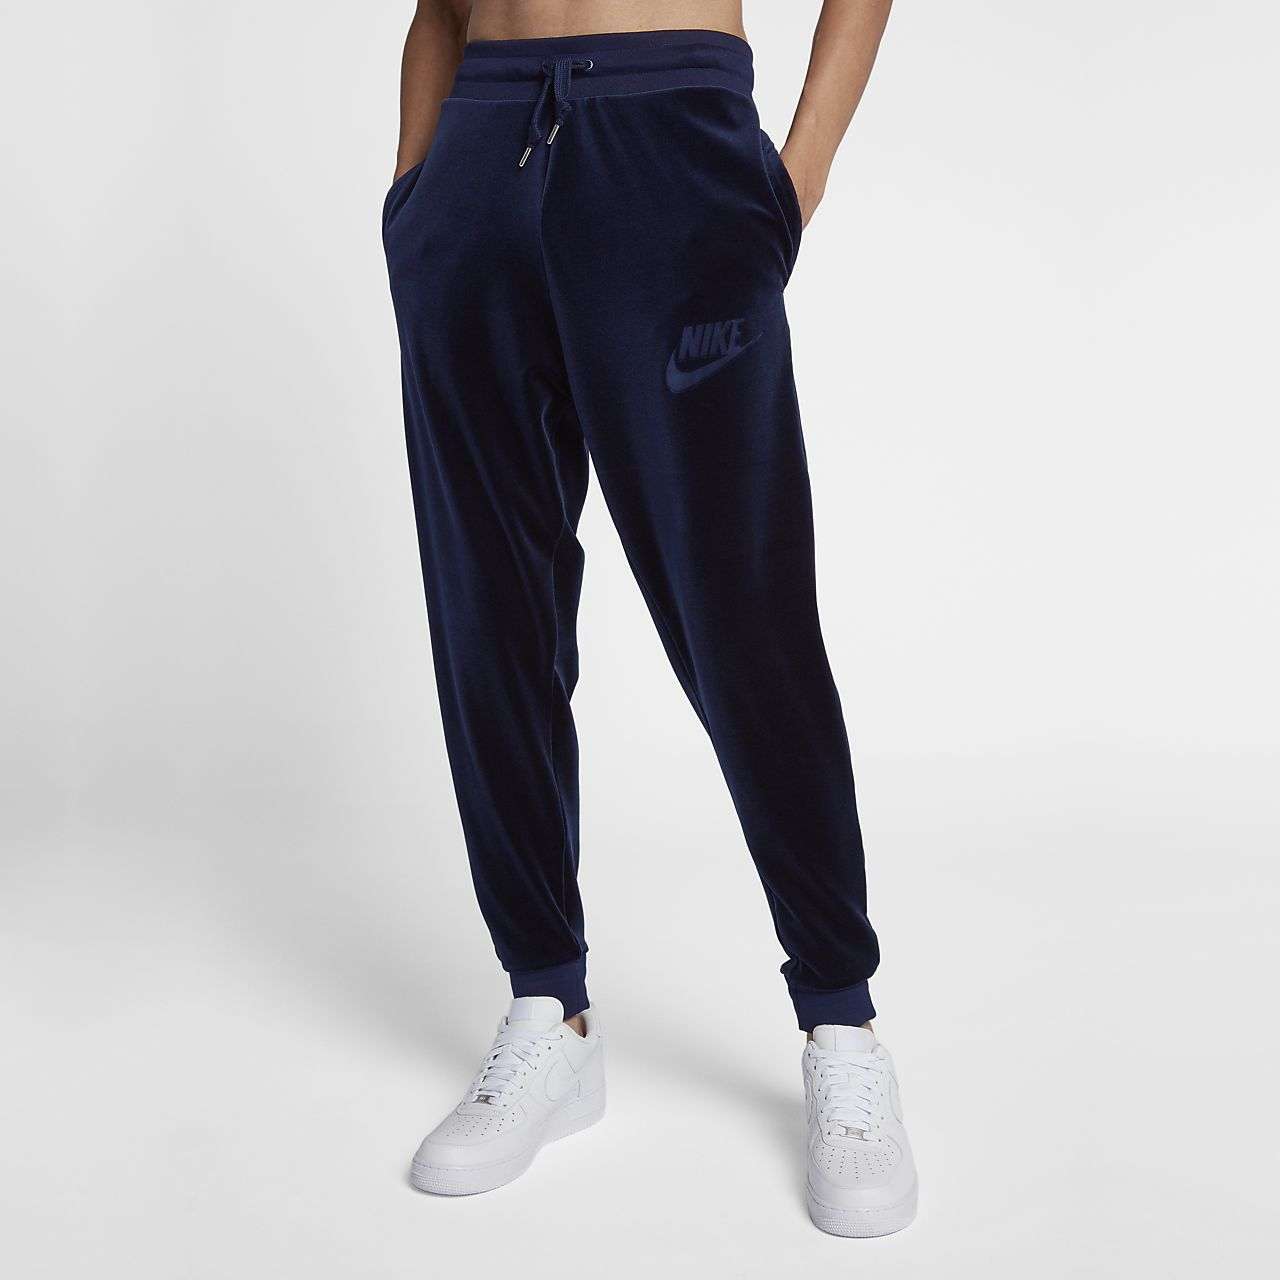 buy online 6a6a8 c1034 Low Resolution Nike Sportswear Men s Velour Trousers Nike Sportswear Men s  Velour Trousers